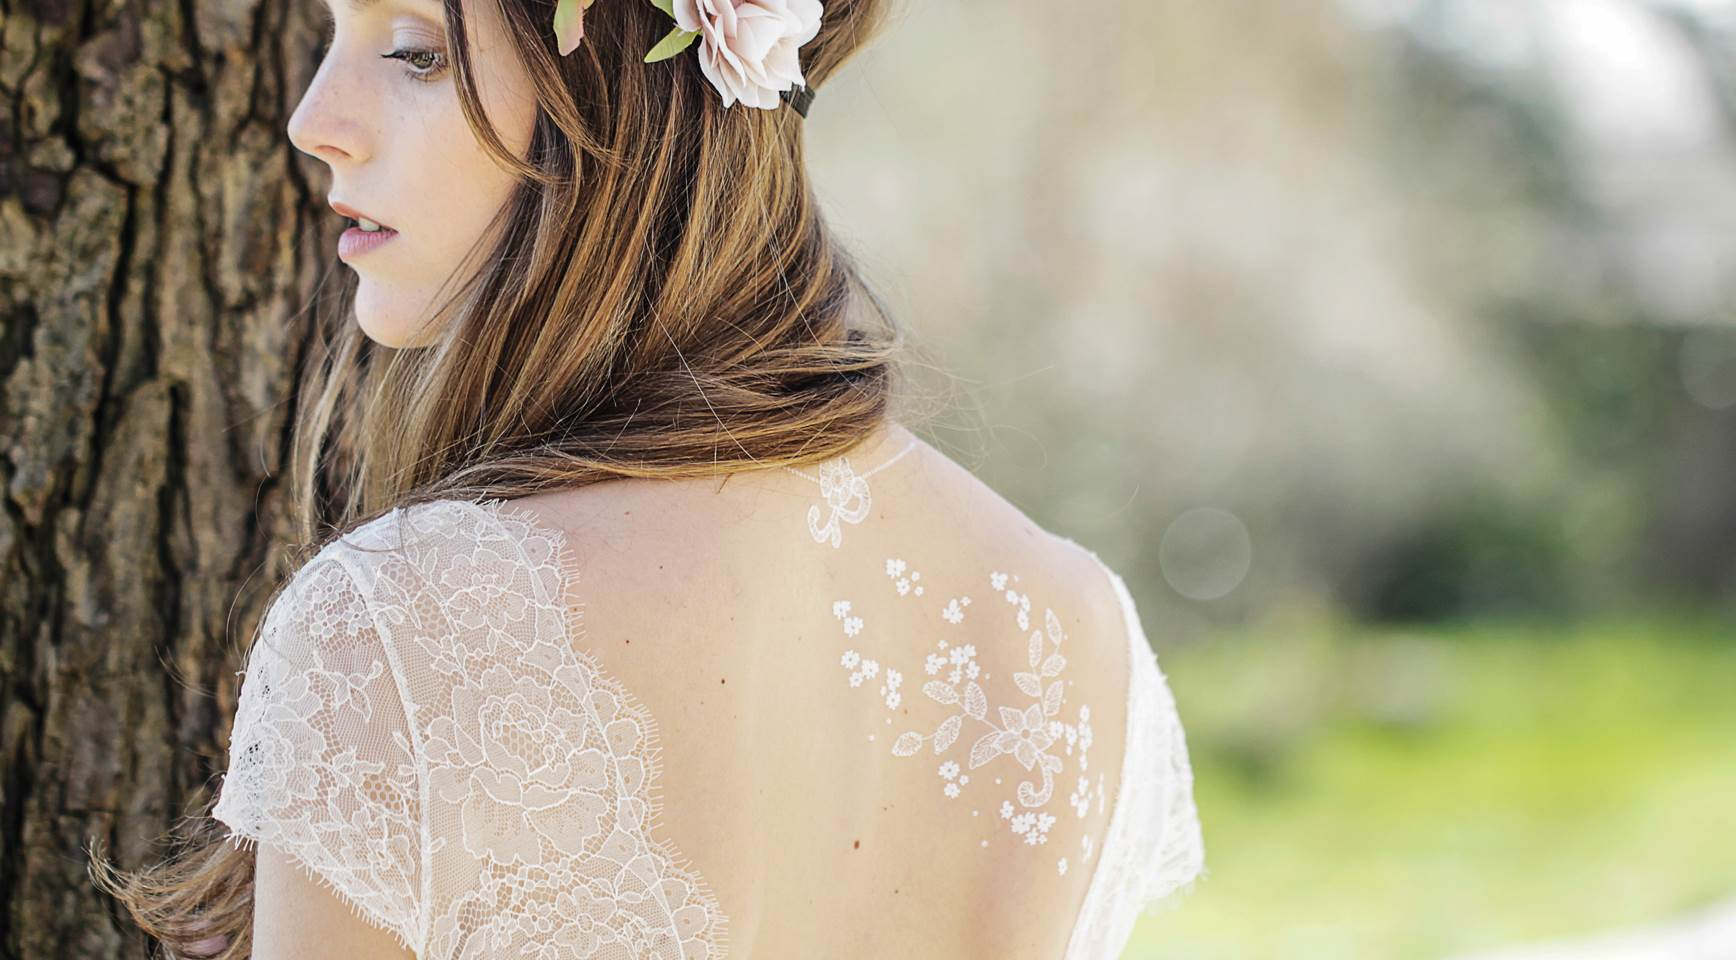 Temporary wedding tattoos by Sioou as featured on The National Vintage Wedding Fair